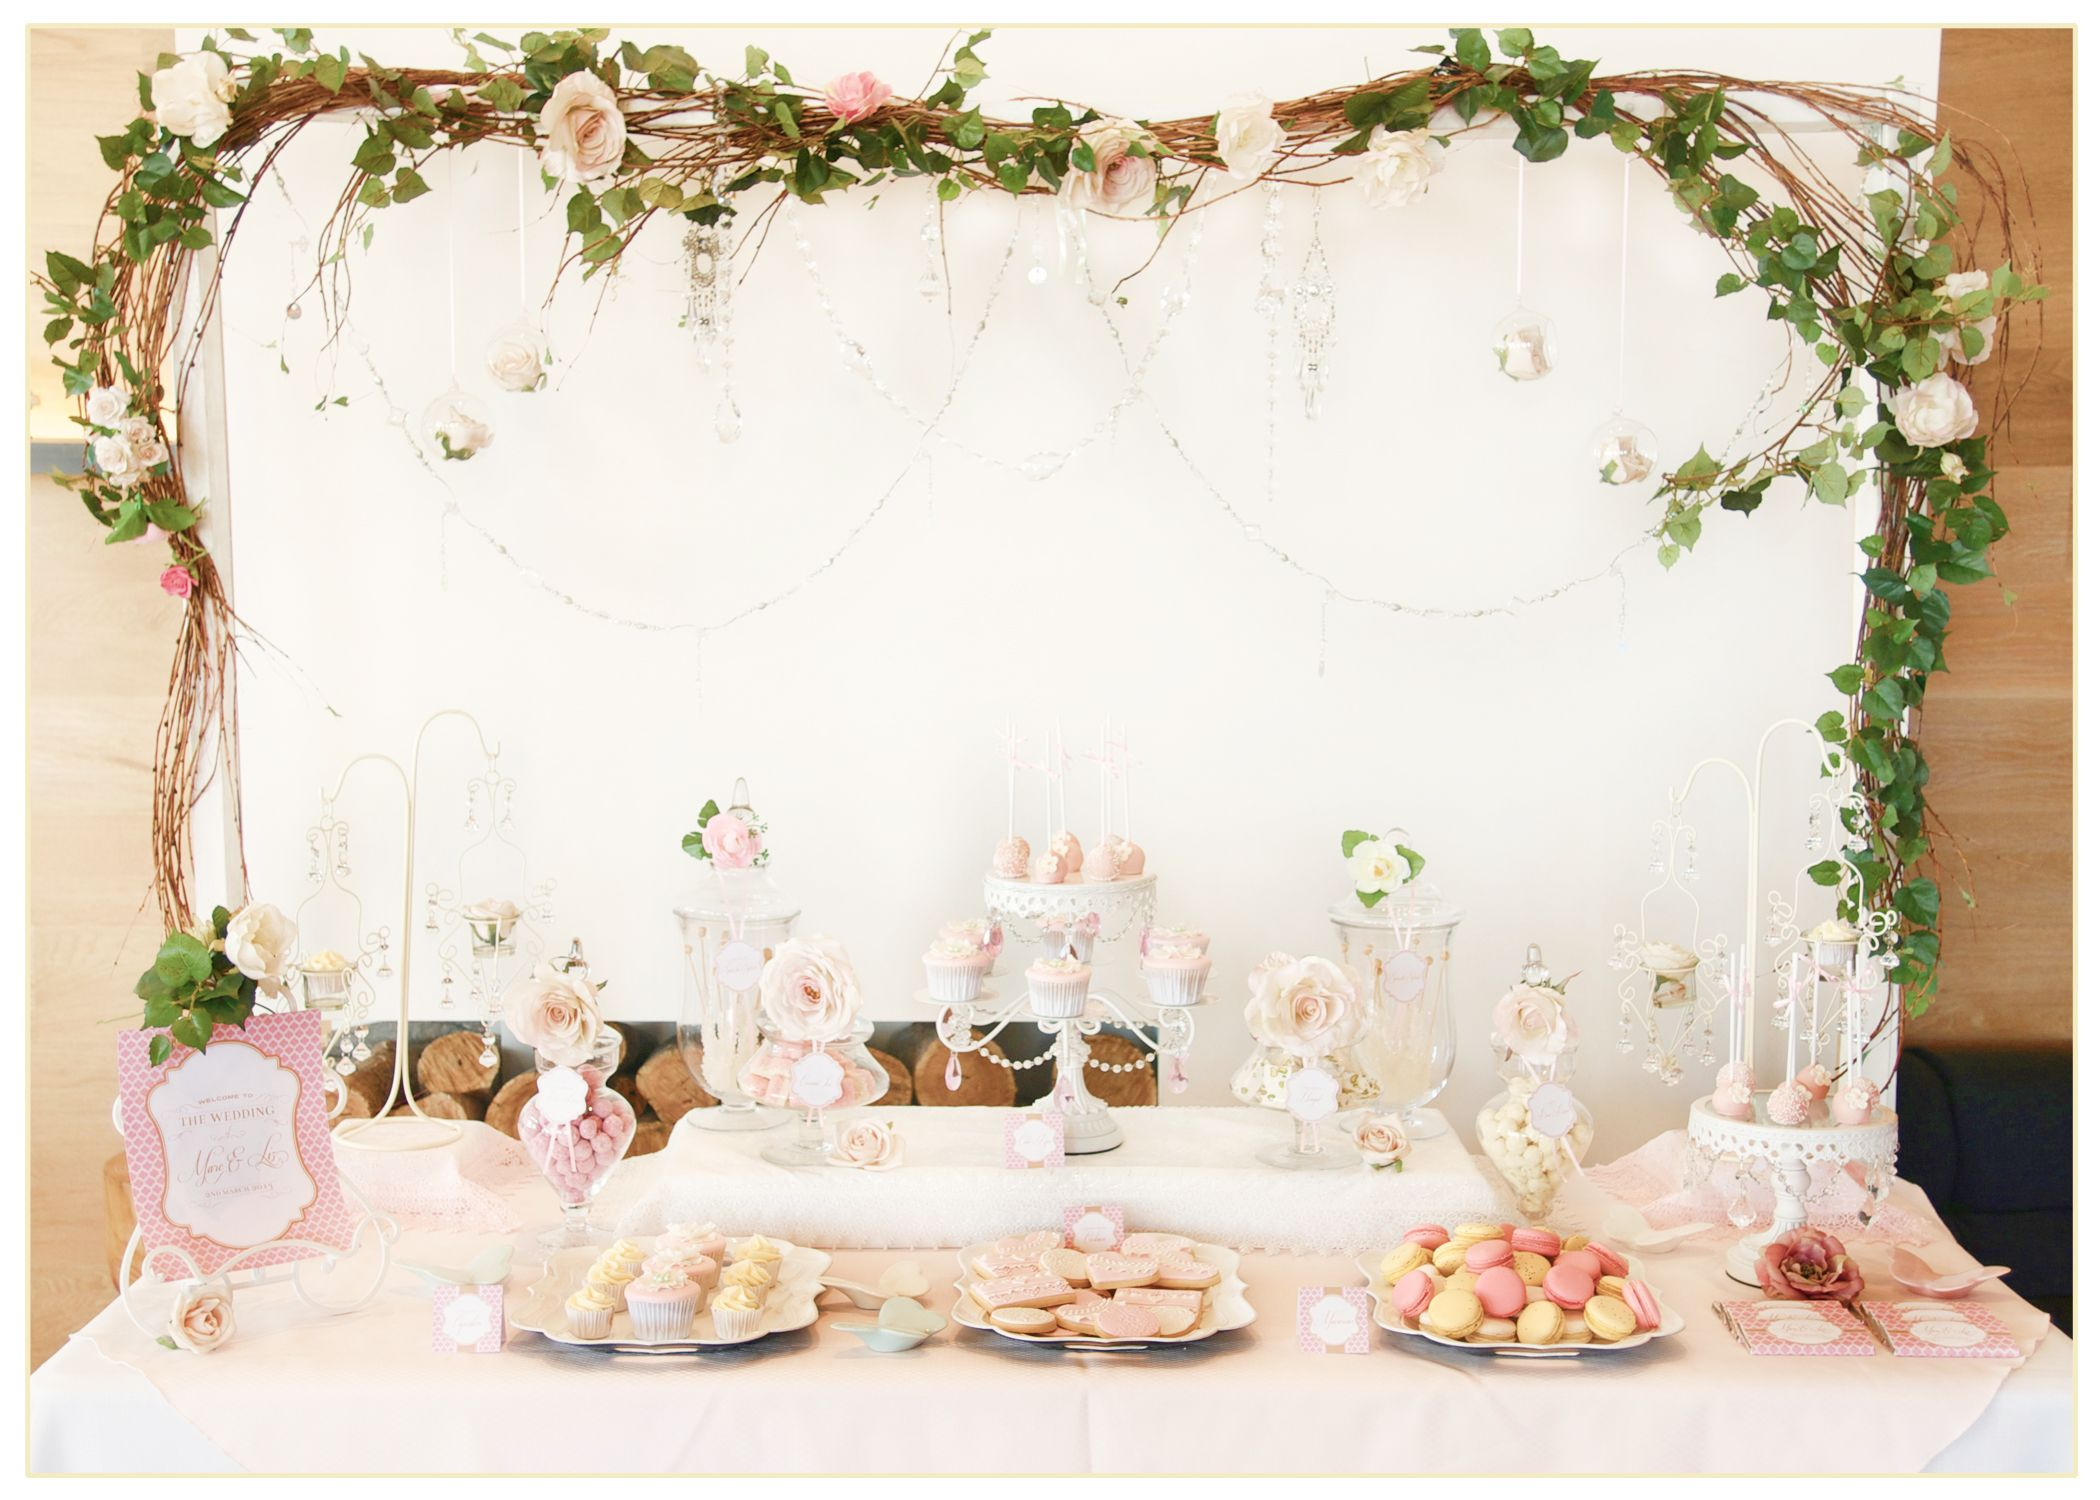 KMK wedding dessert table Styling Decorating for Parties